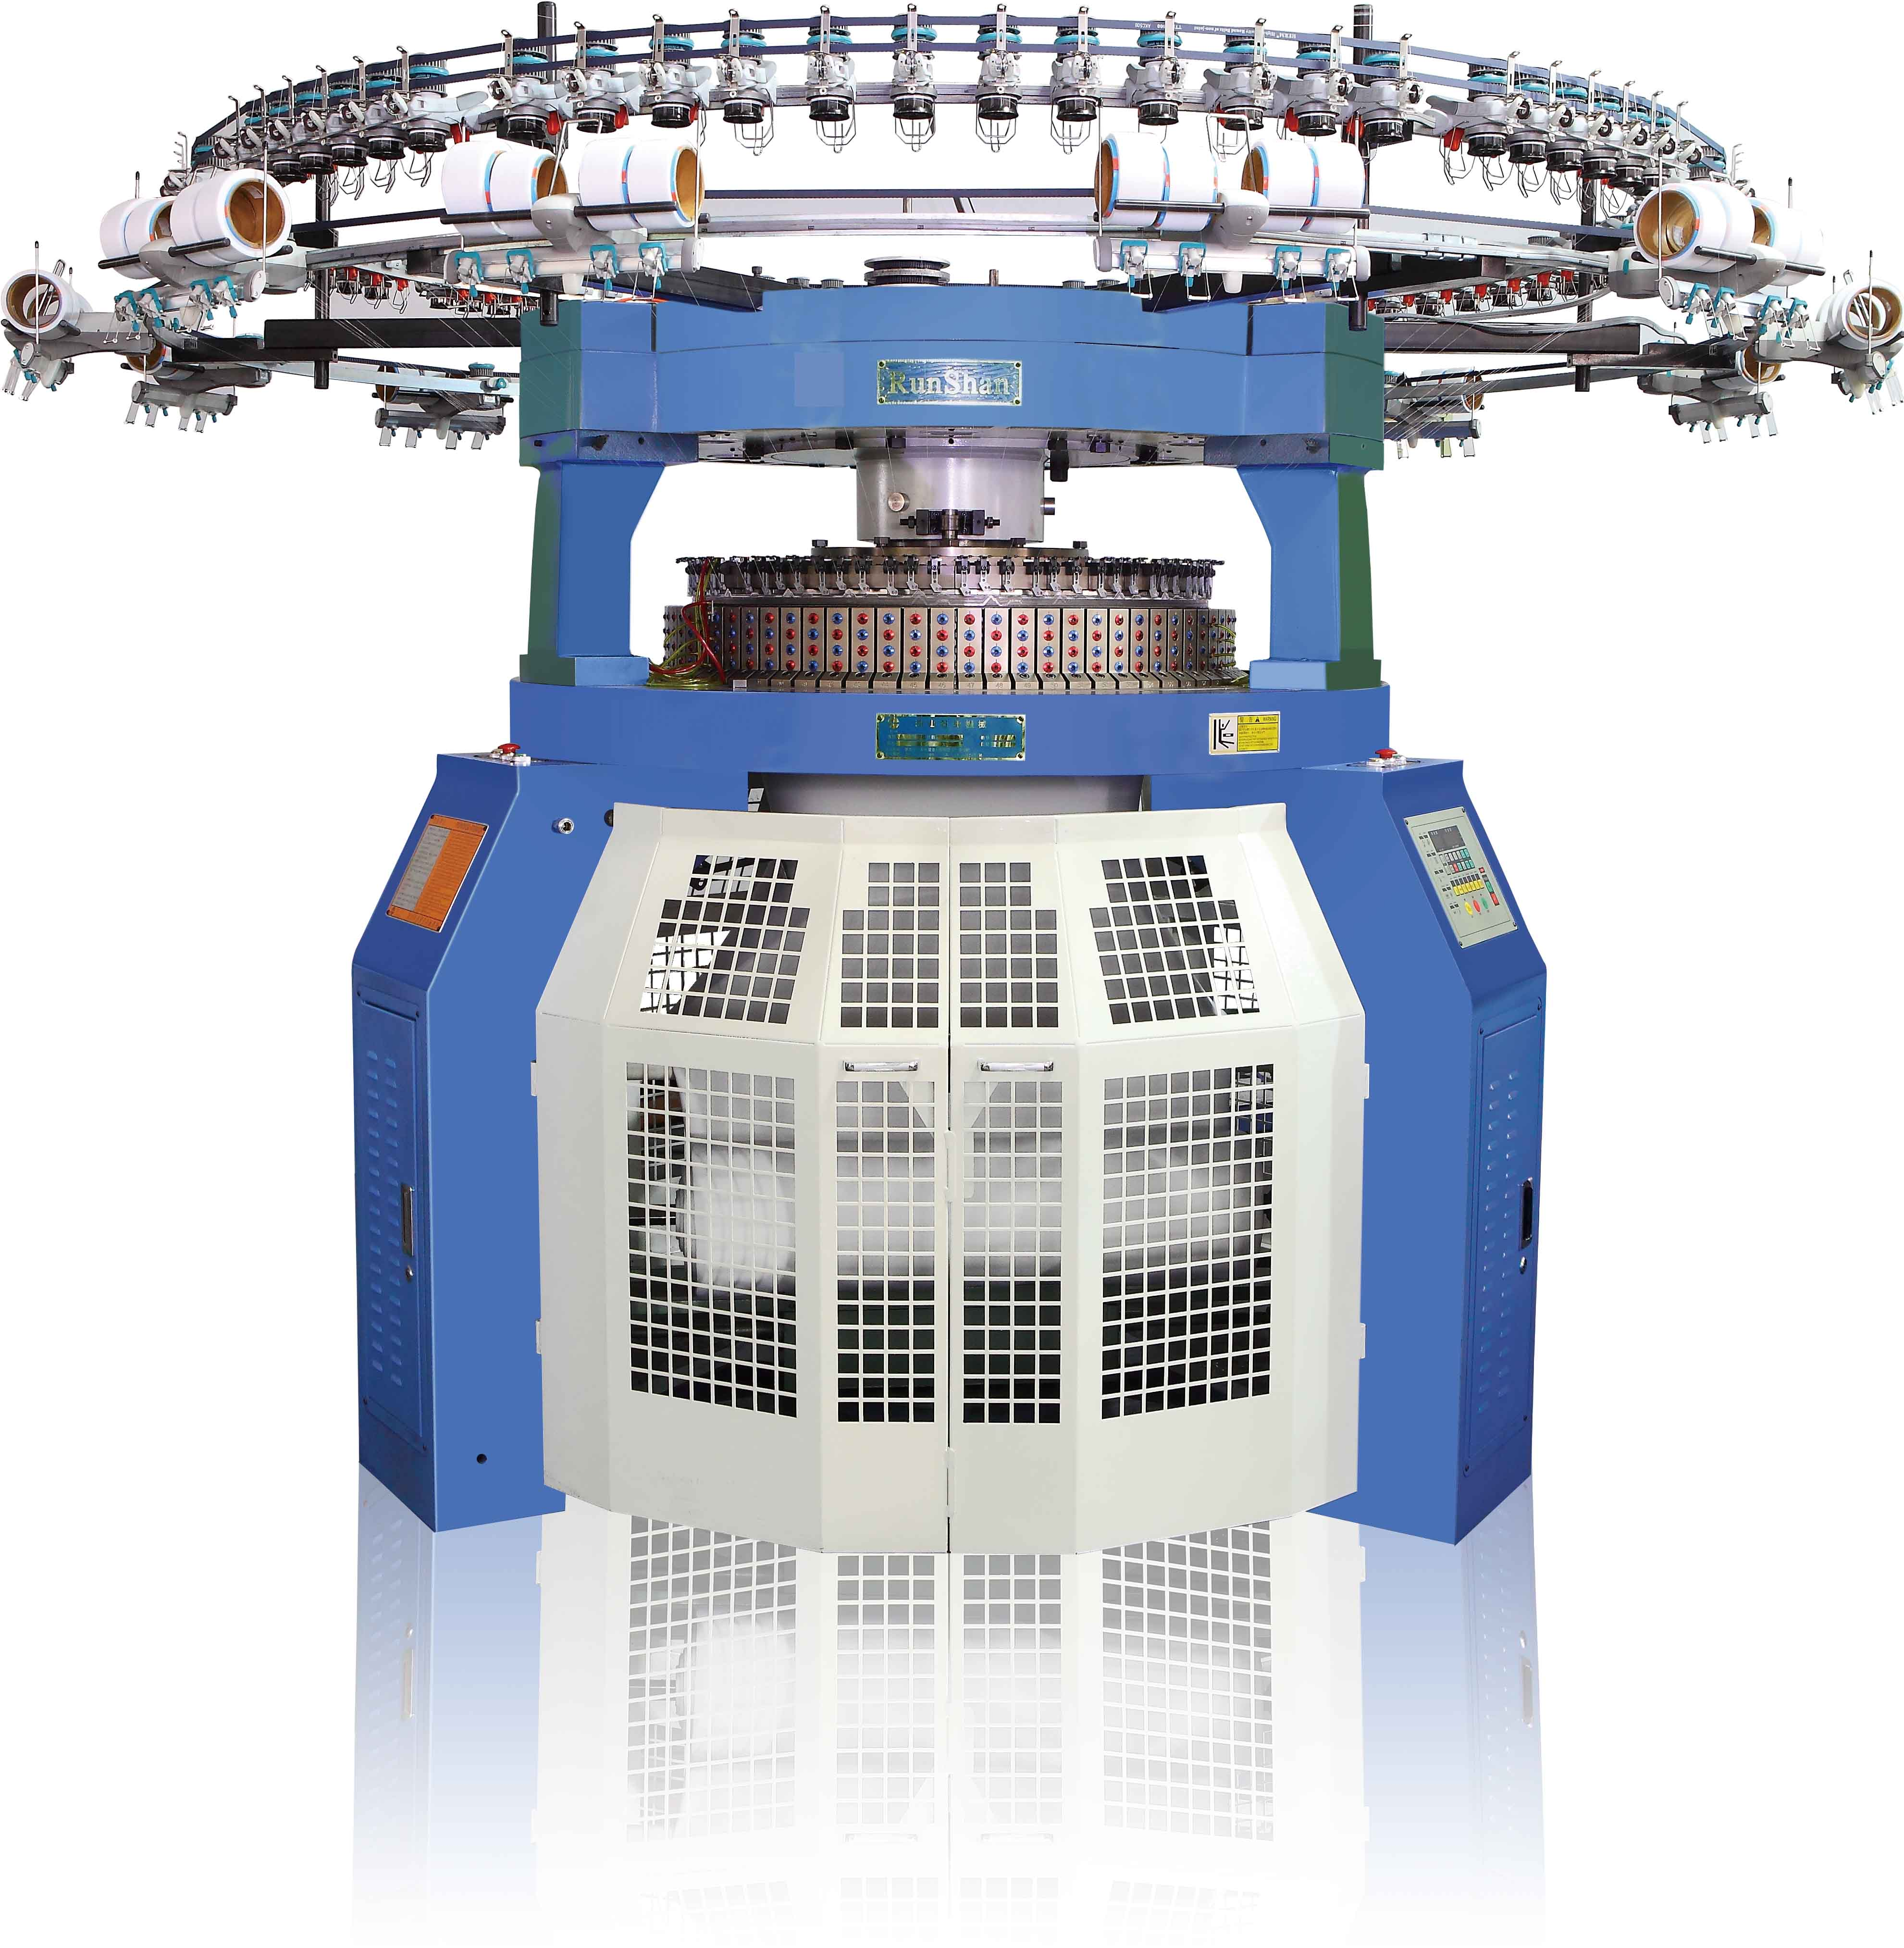 Interlock double jersey circular knitting machine